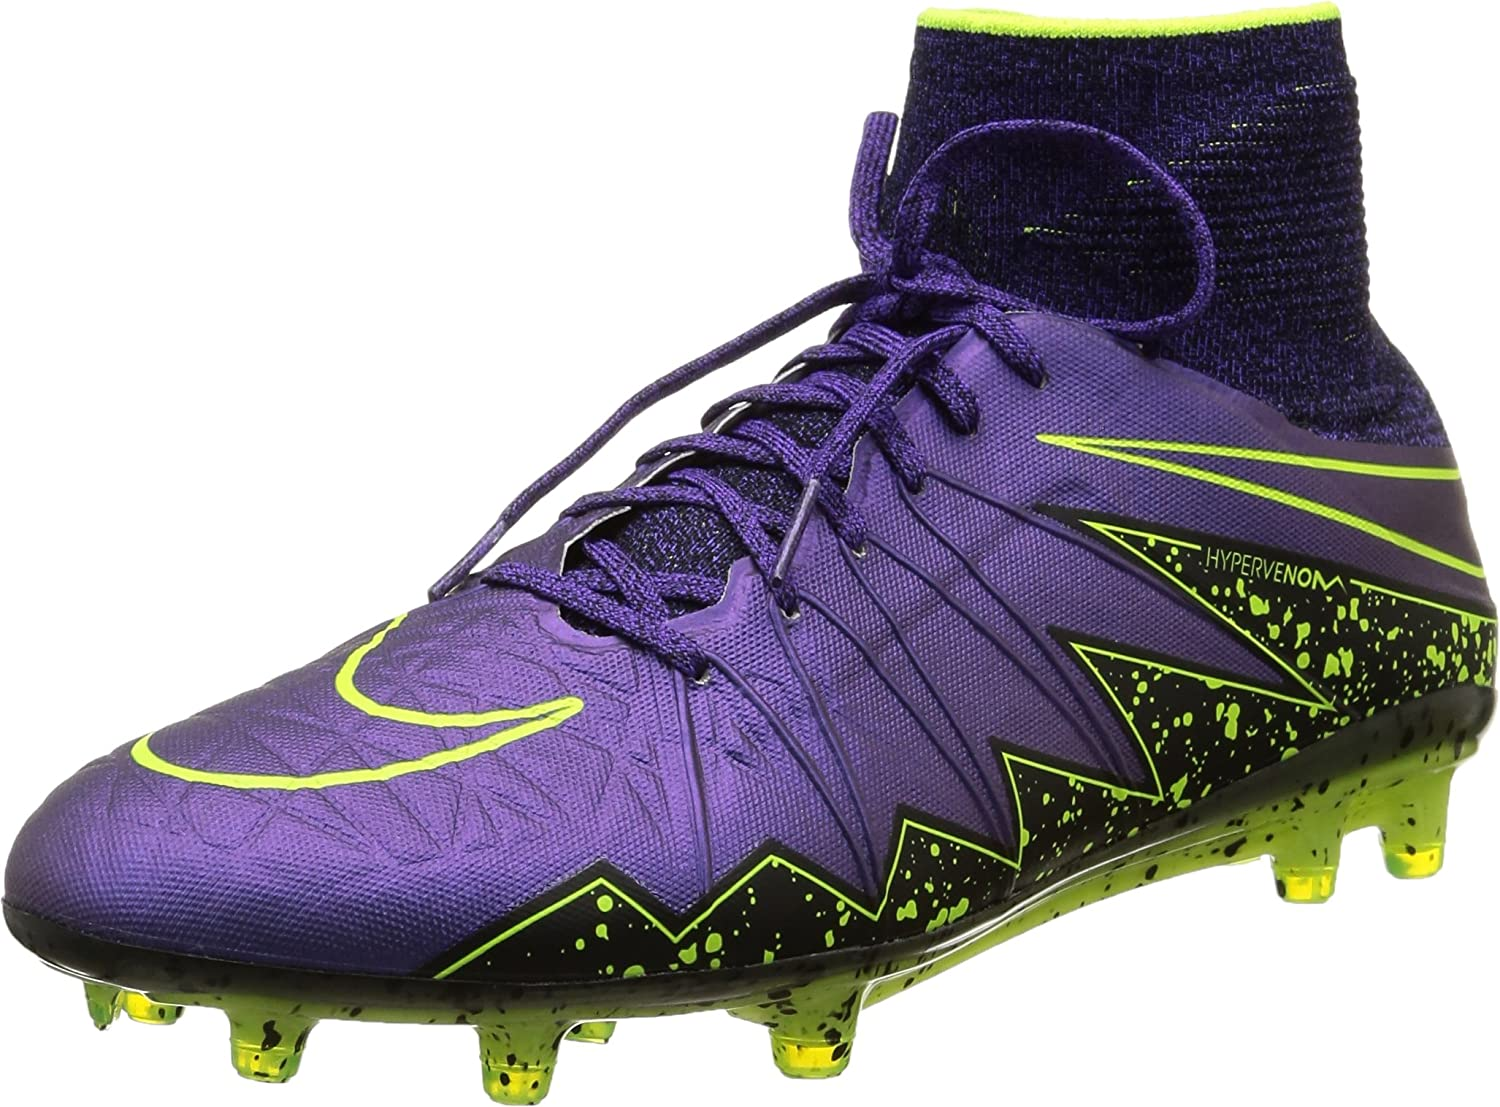 new concept c9b0d 2e27b NIKE Hypervenom Phantom II Firm Ground-Hyper Grape/Black/Hyper Grape